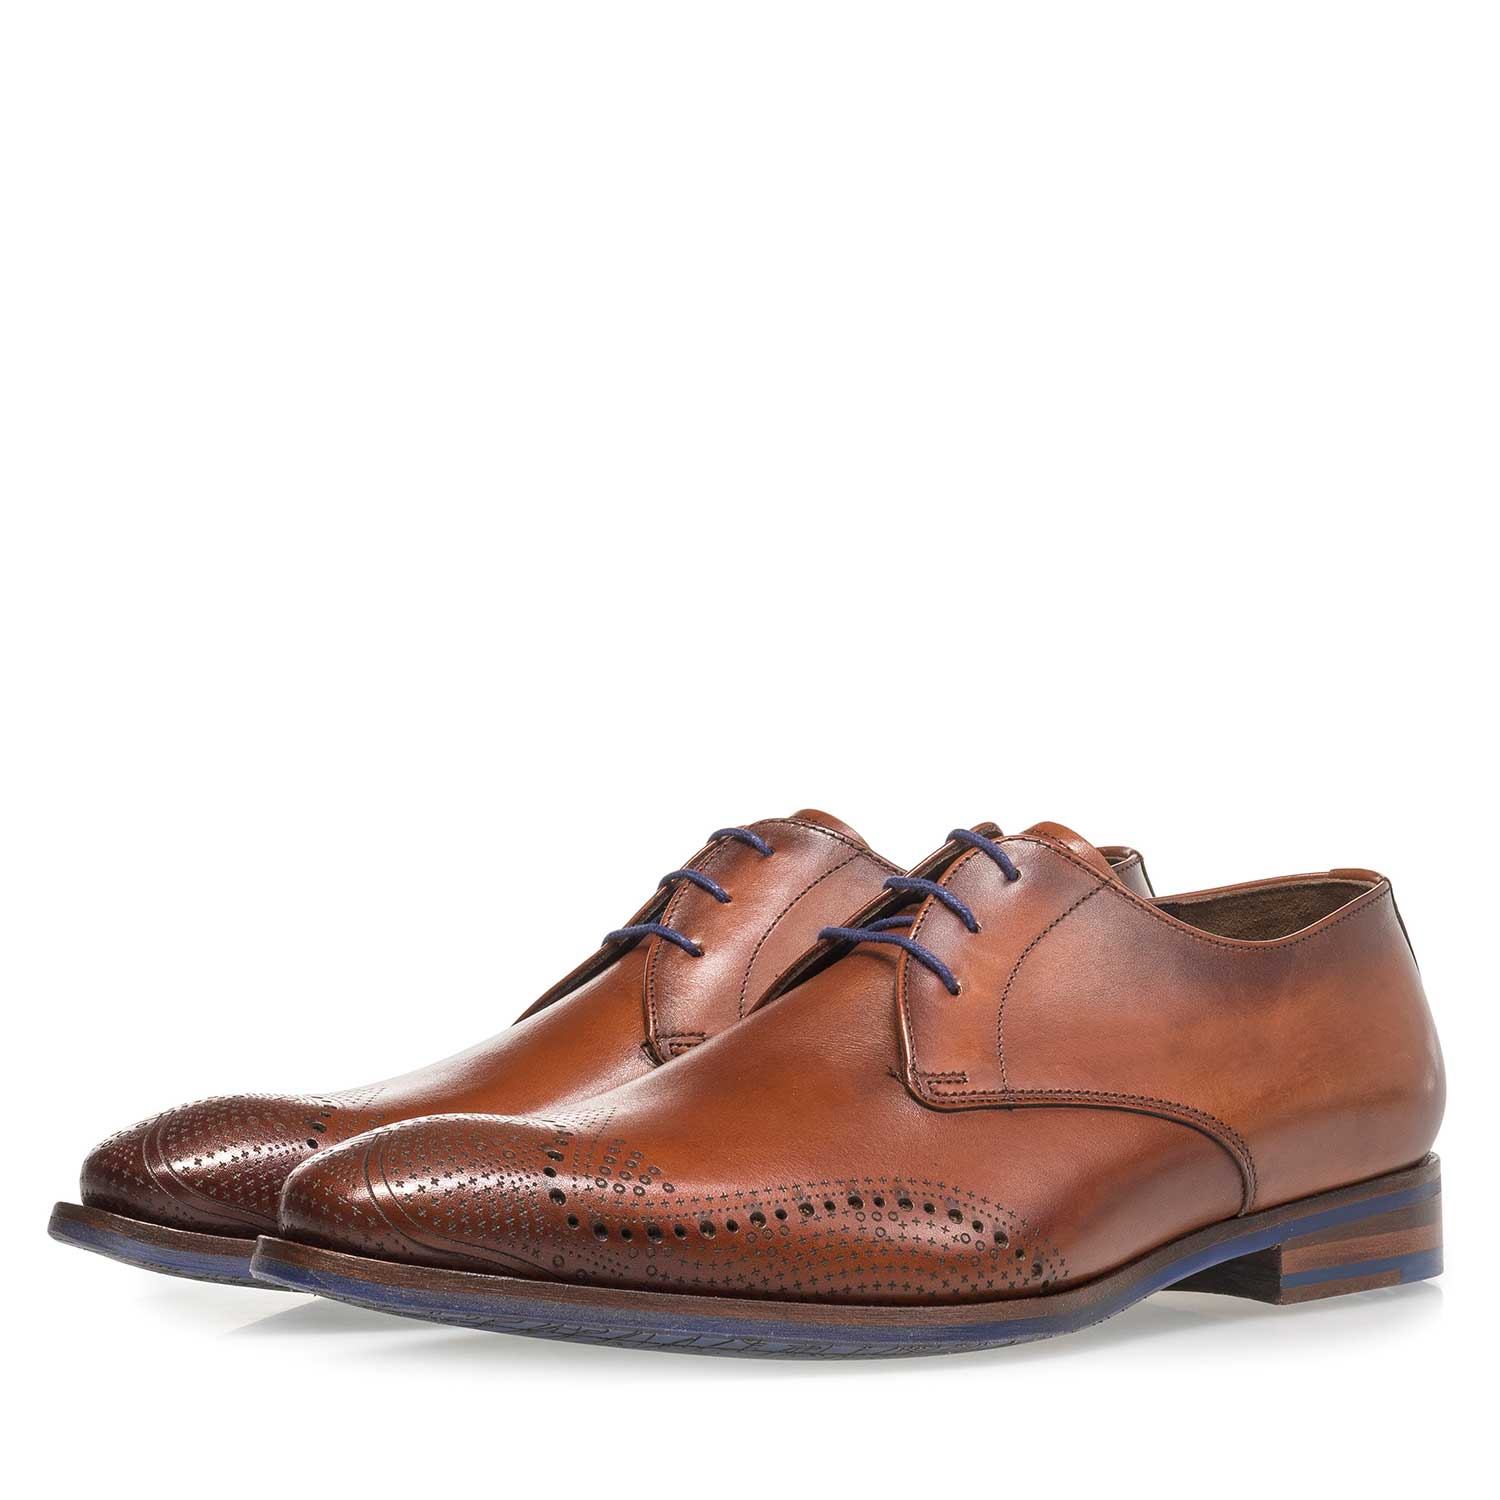 18175/00 - Dark cognac-coloured calf leather lace shoe